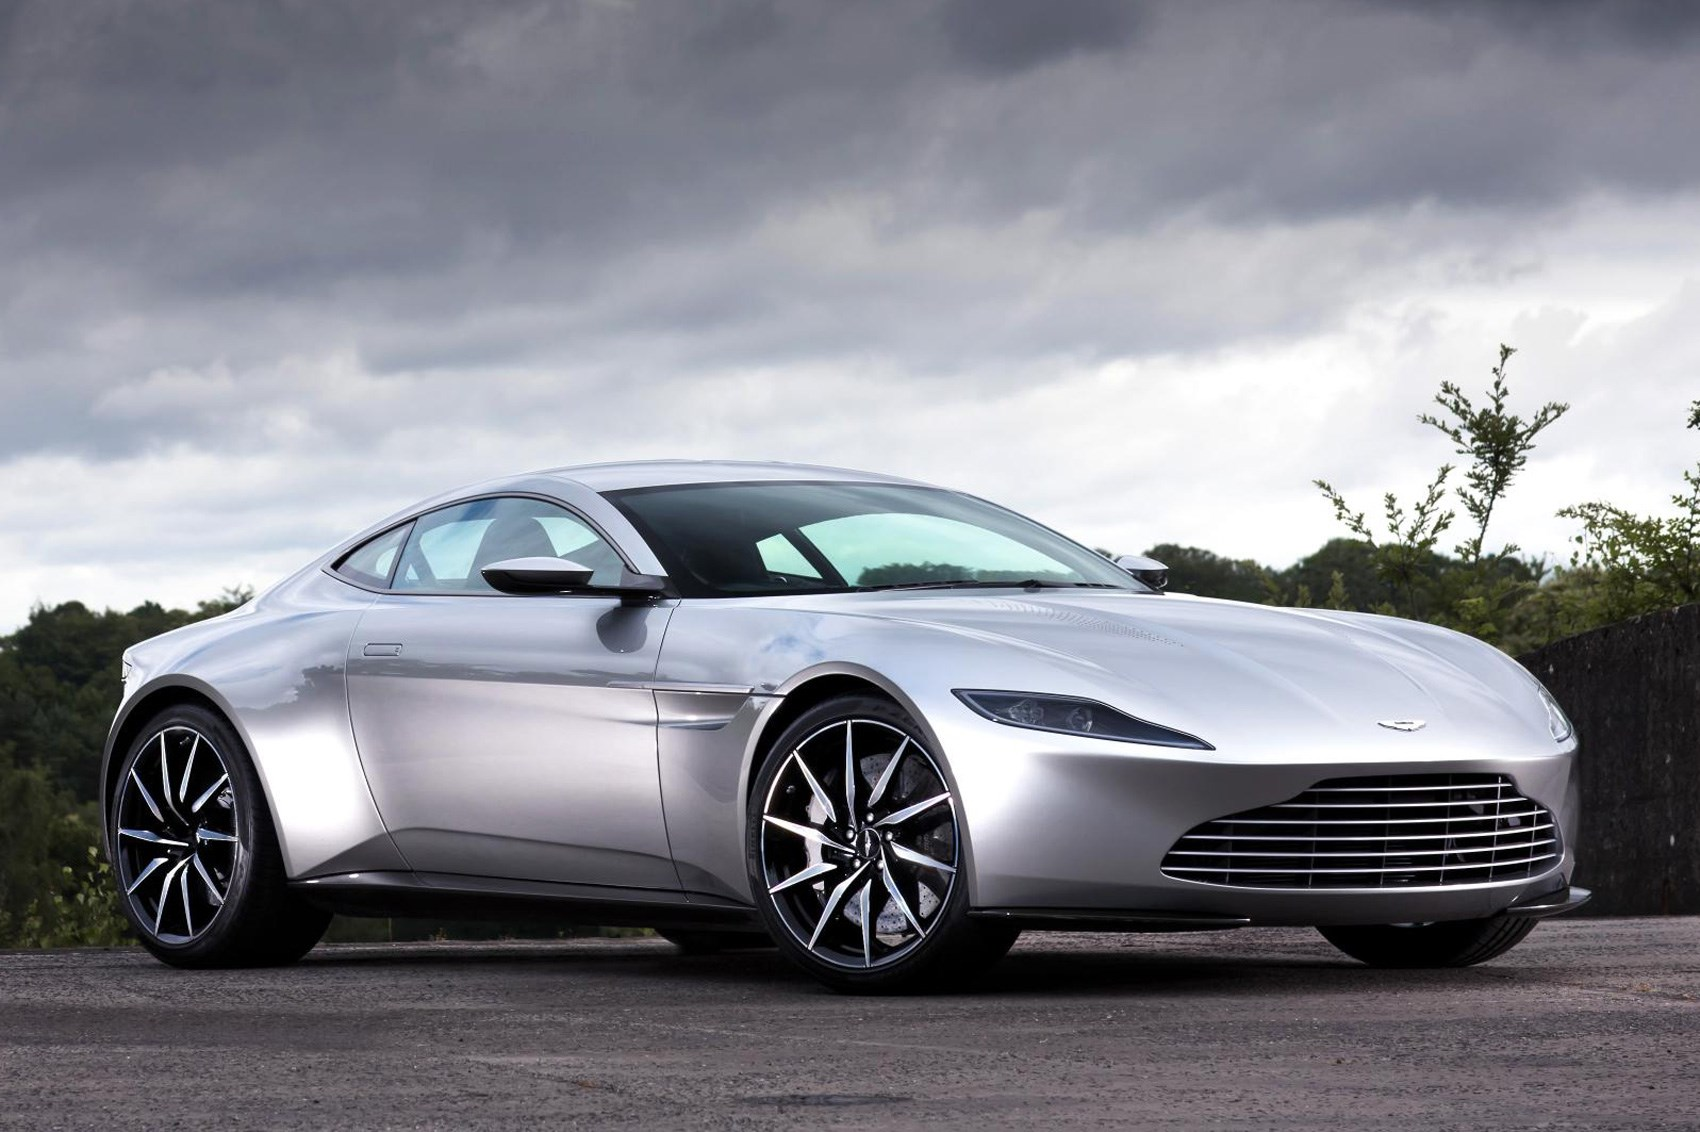 Good ... Vantage The Aston Martin DB10: A Concept Built Just For James Bond In  Spectre? Fat Chance.